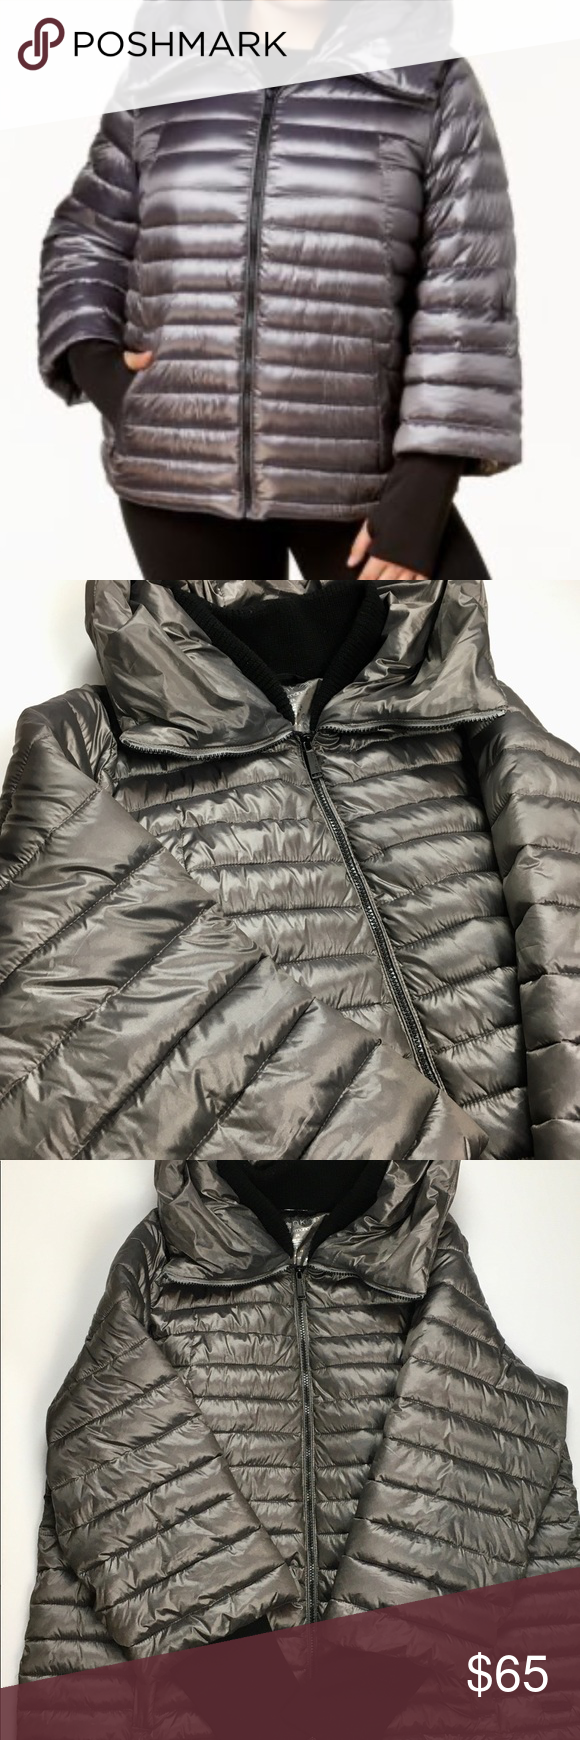 Calvin Klein Performance Puffer Jacket Very Cool Hooded Puffer Coat With Wrist Warmers This Coat Has A High Low Look And Zipper Clothes Design Jackets Calvin [ 1740 x 580 Pixel ]